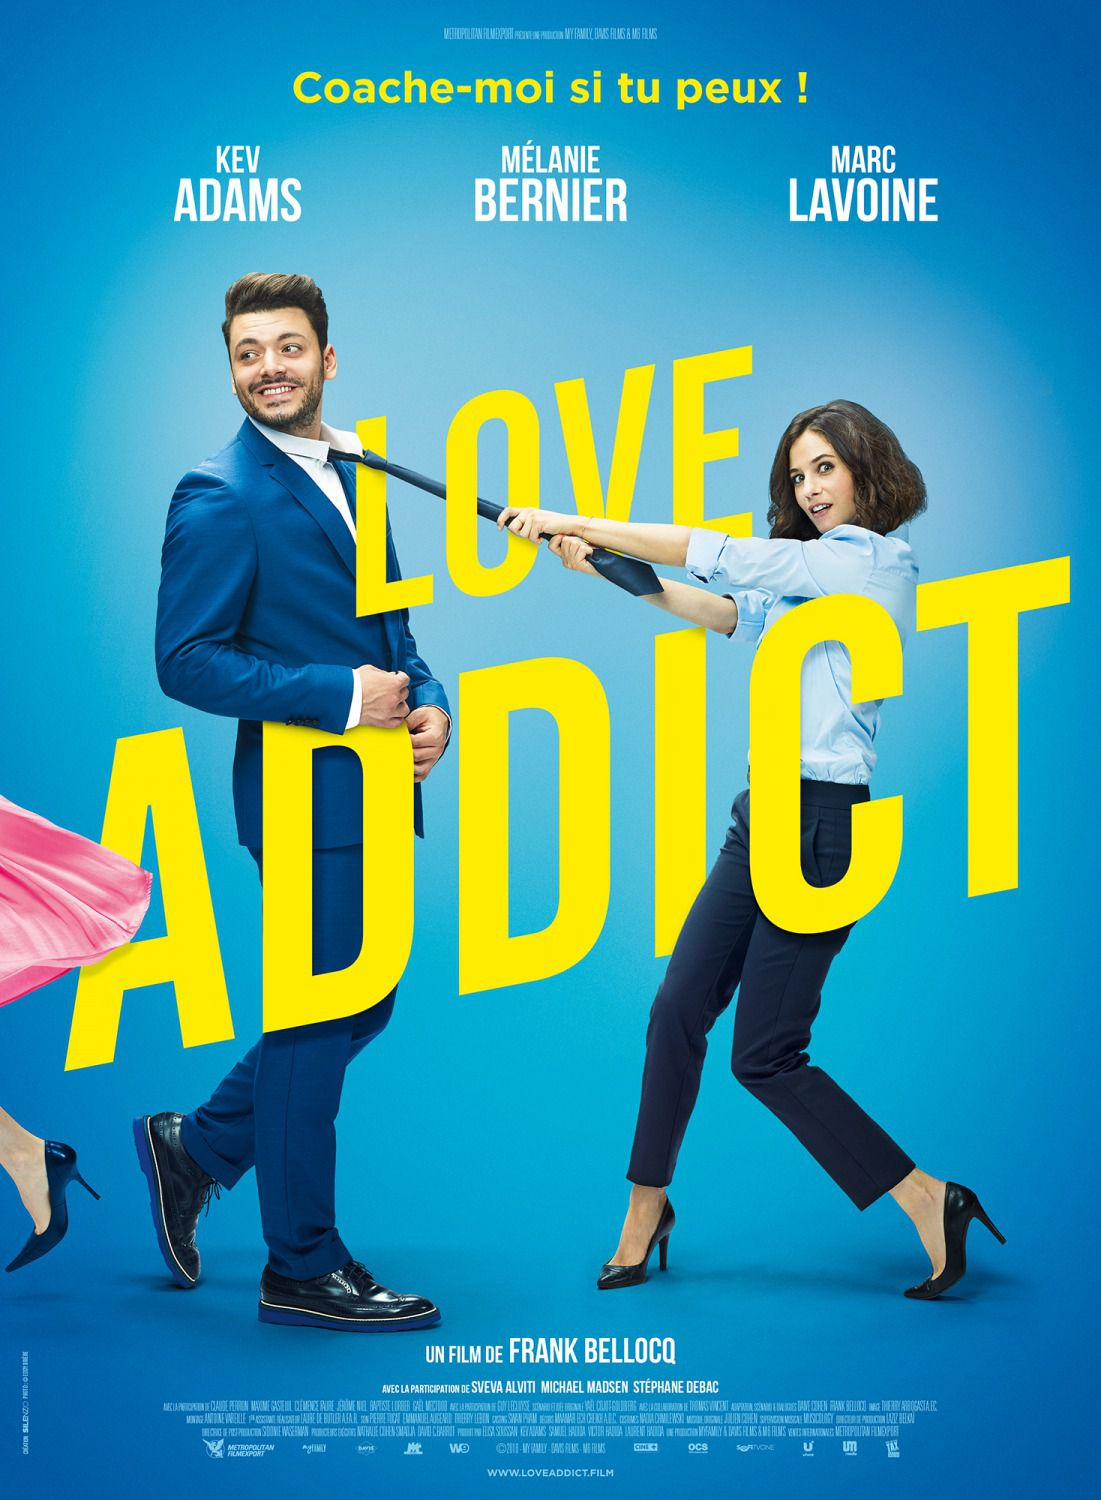 Love Addict - Cast: Kev Adams, Melanie Bernier, Marc Lavoine - comedy film poster